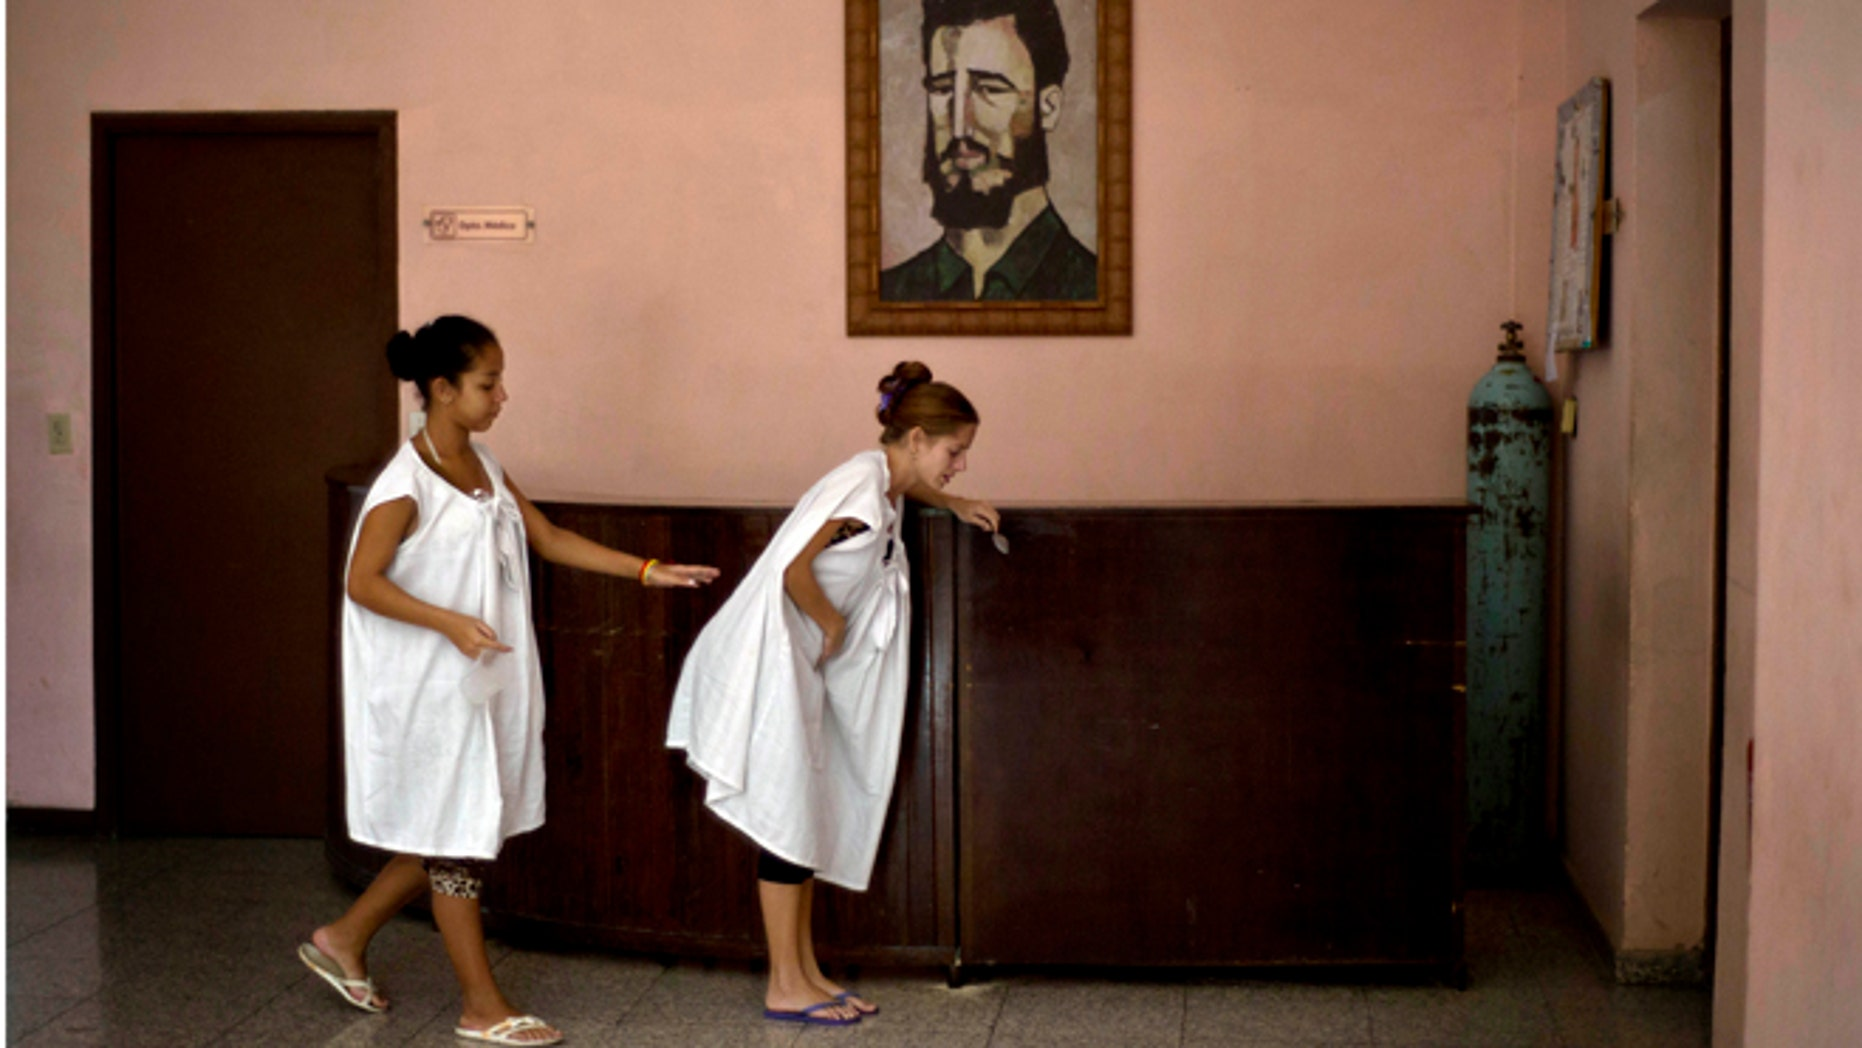 In this Oct. 27, 2014 photo, a pregnant woman is helped by another as she suffers from labor pains, while walking in front of a painting of Fidel Castro at a special maternity unit for high-risk pregnancies in Havana, Cuba. The island nation is in the midst of a broad campaign to drive up a birth rate that has fallen to the lowest in Latin America after years of fewer births, that mean that the number of working-age people in Cuba is expected to shrink starting next year, terrible news for an island attempting to jumpstart its stagnant centrally planned economy. (AP Photo/Ramon Espinosa)